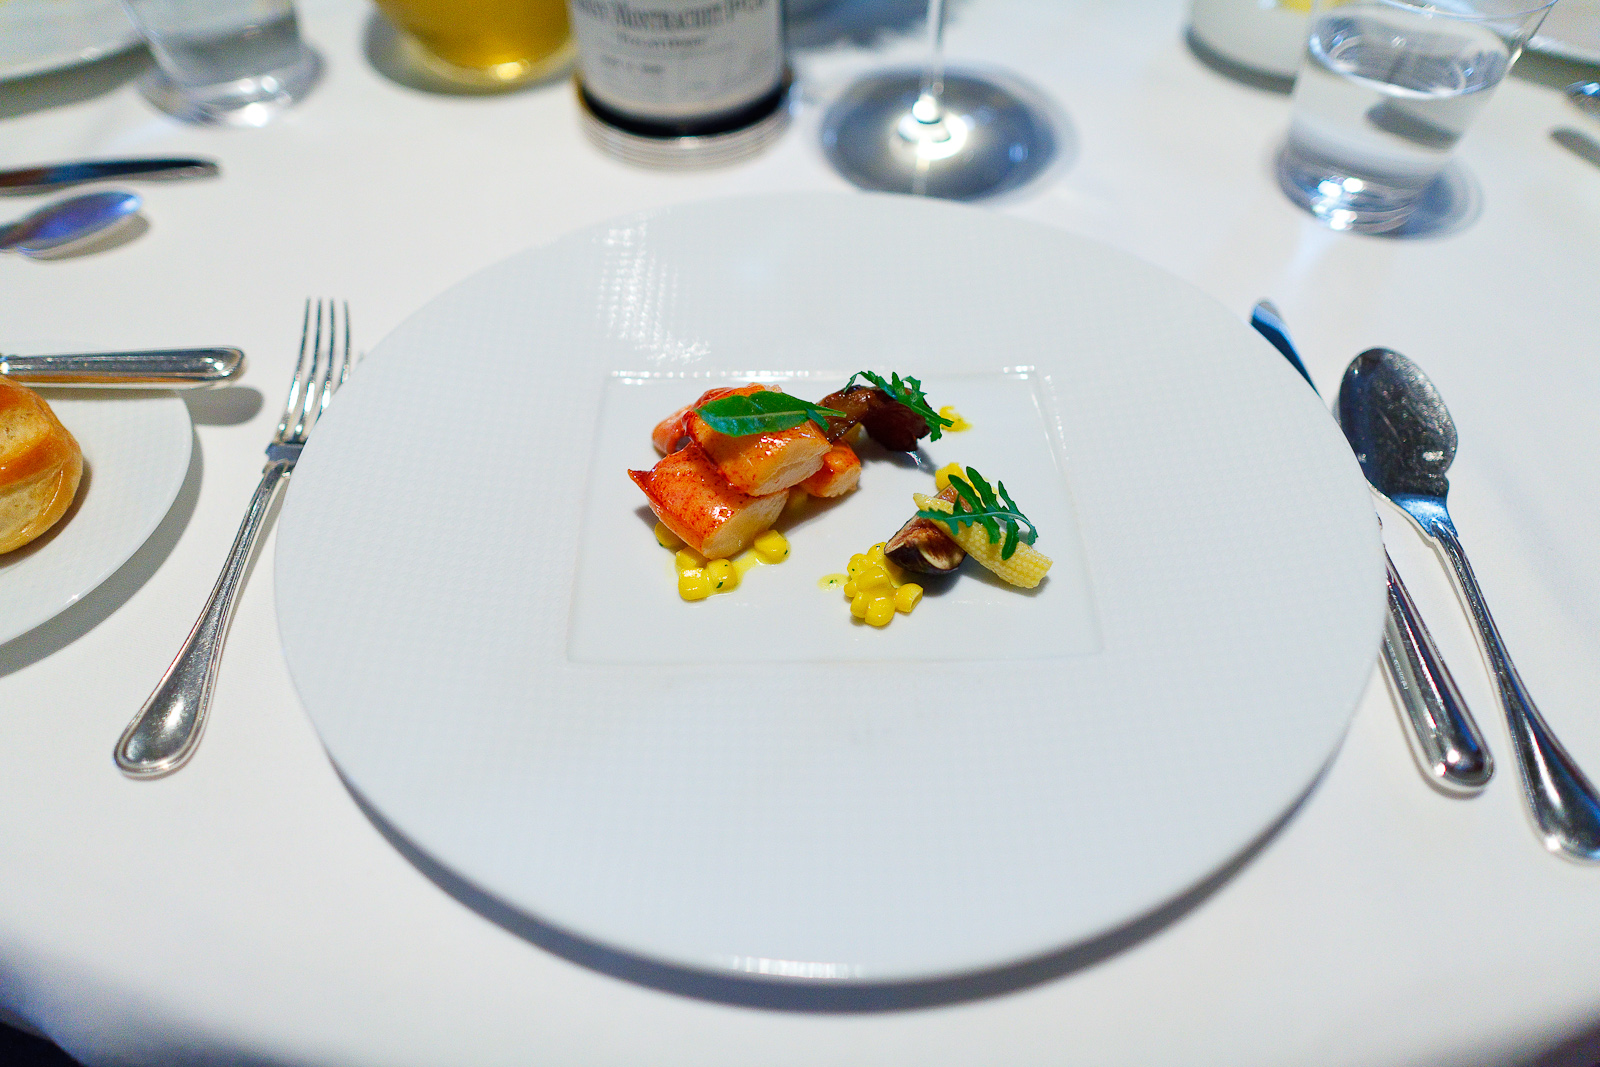 5th Course: Sweet Butter-Poached Maine Lobster Tail, Fennel Bulb, Mission Fig, Marcona Almonds and Aged Balsamic Vinegar